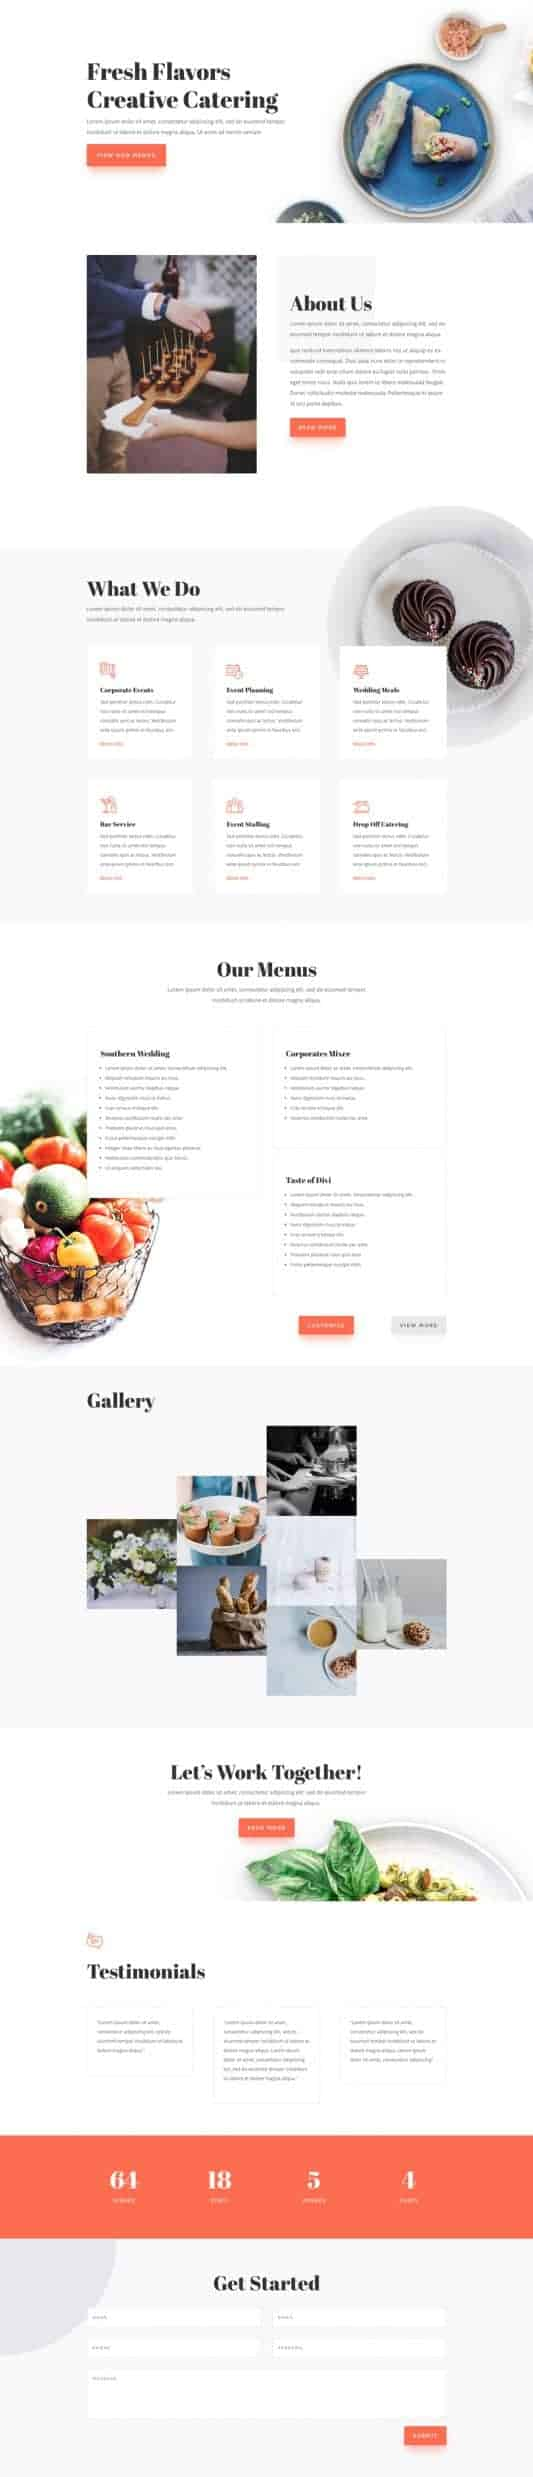 The Food Catering Page Style: Homepage Design 1